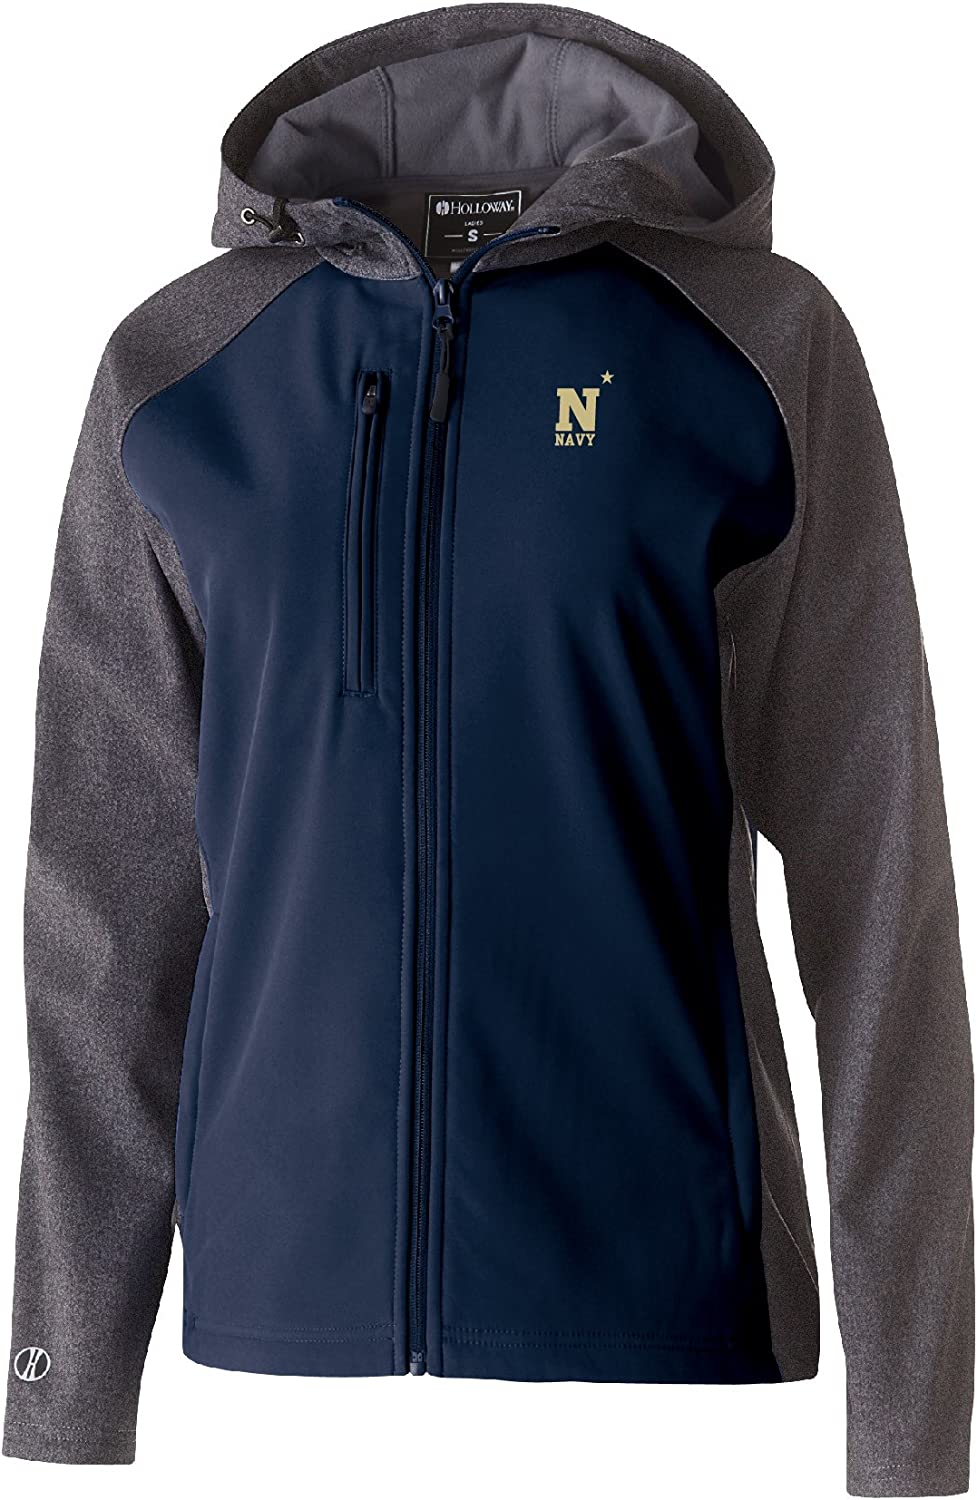 NCAA Navy Womens Raider Soft Shell Jacket